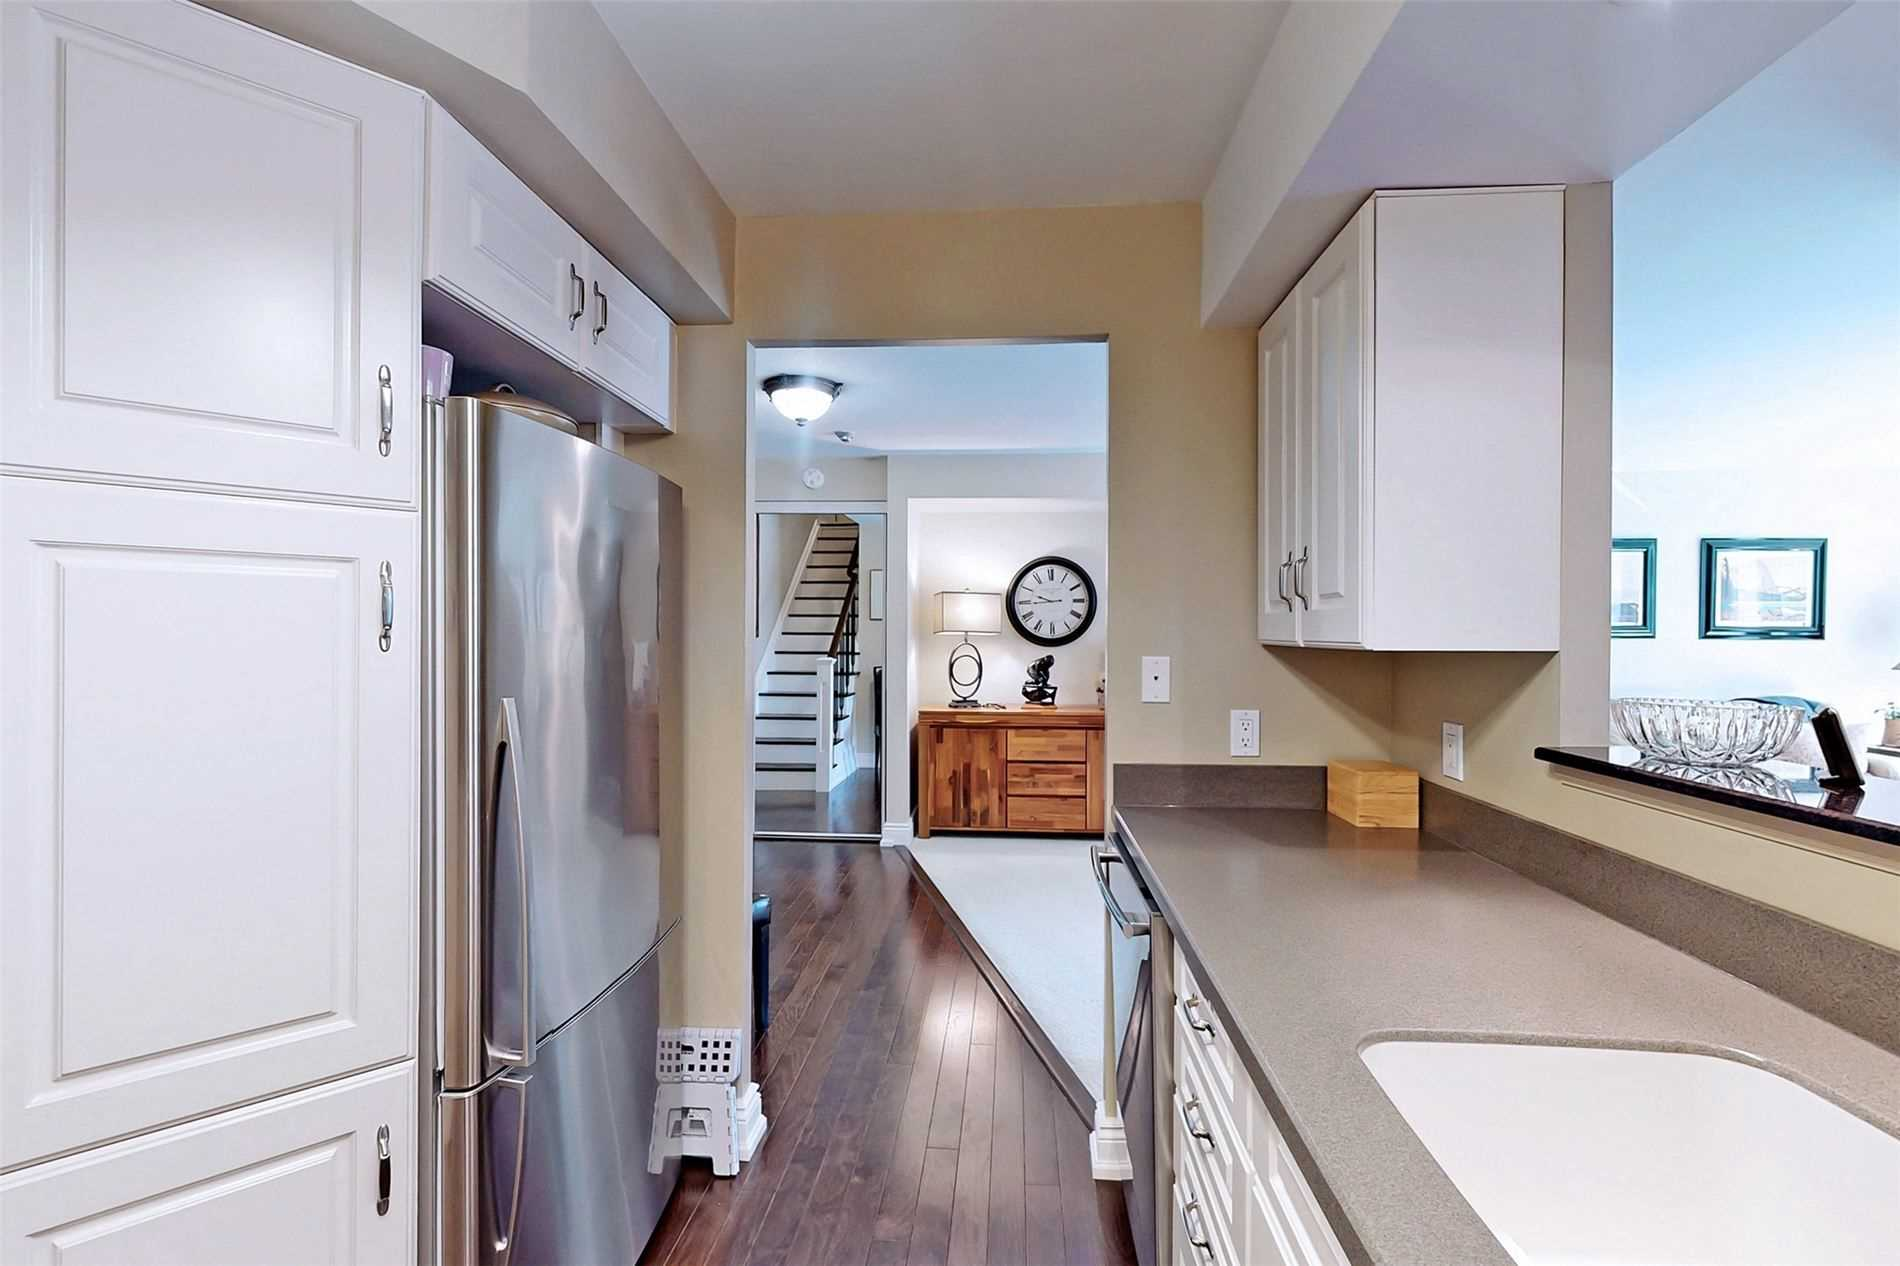 Image 4 of 40 showing inside of 2 Bedroom Condo Apt 2-Storey for Sale at 25 Cumberland Lane Unit# 105, Ajax L1S7K1